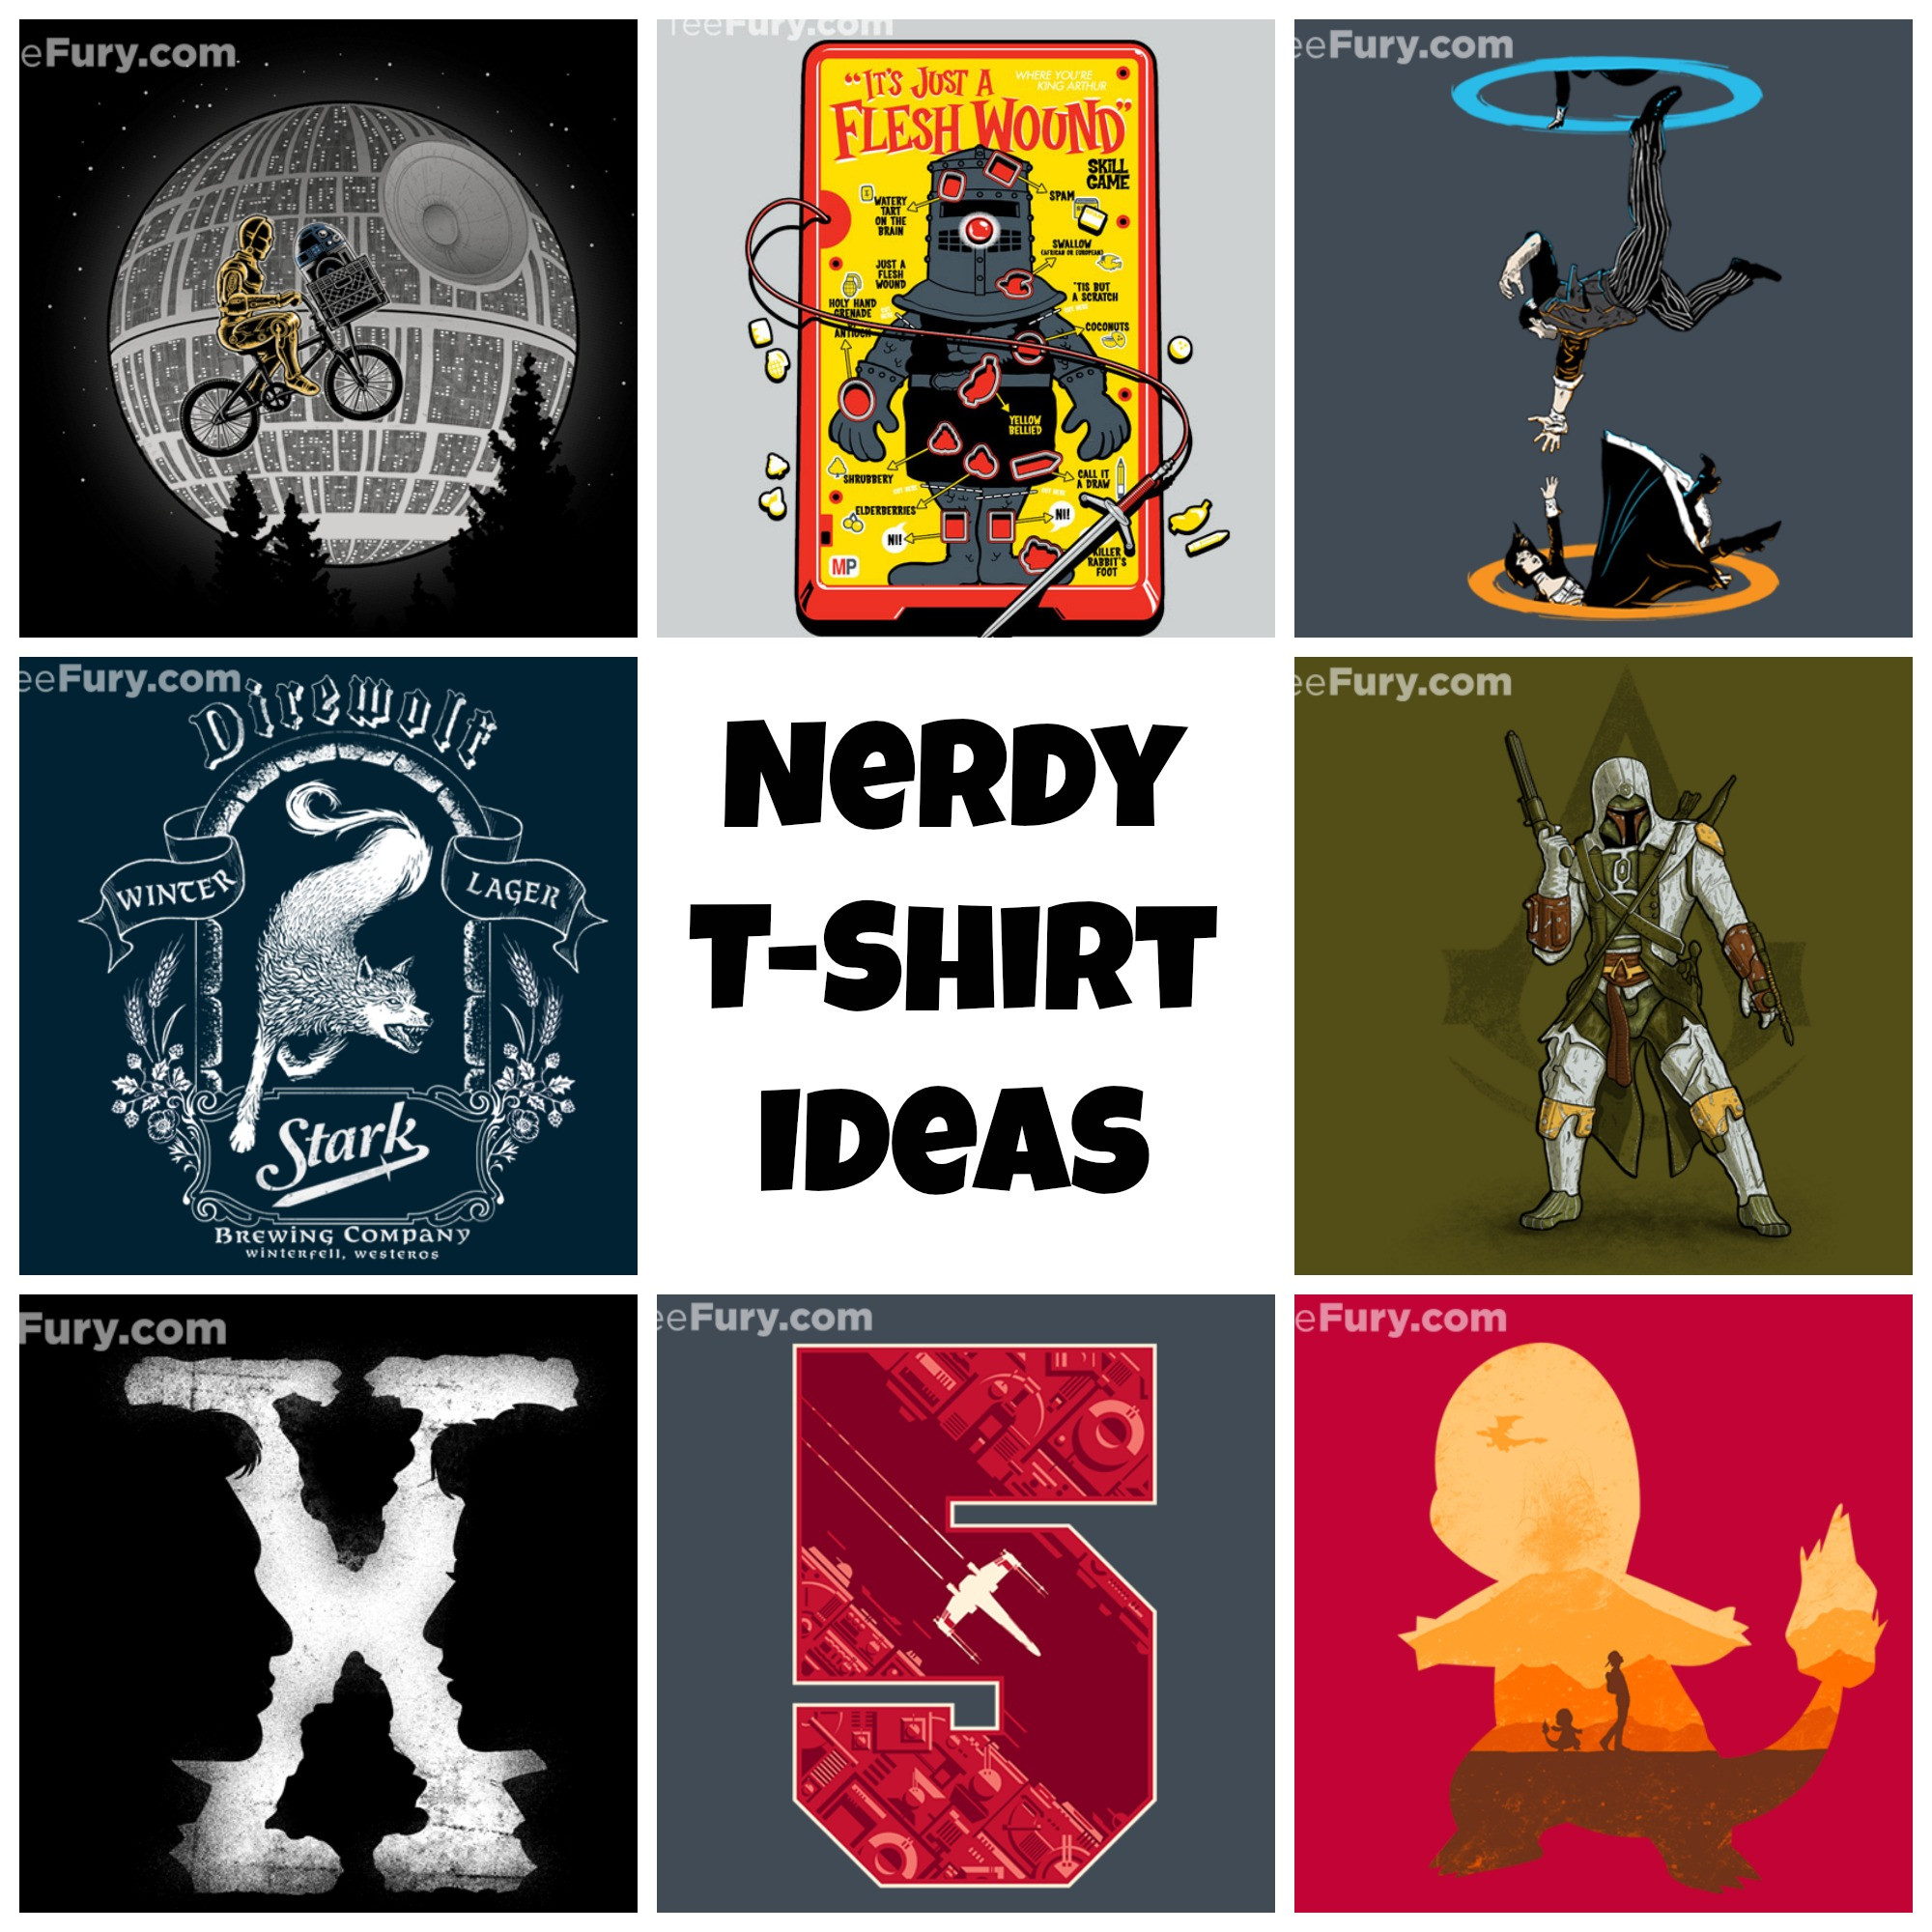 Best ideas about Nerd Gift Ideas . Save or Pin Nerdy T shirt Gift Ideas for the Nerd in your Life Now.